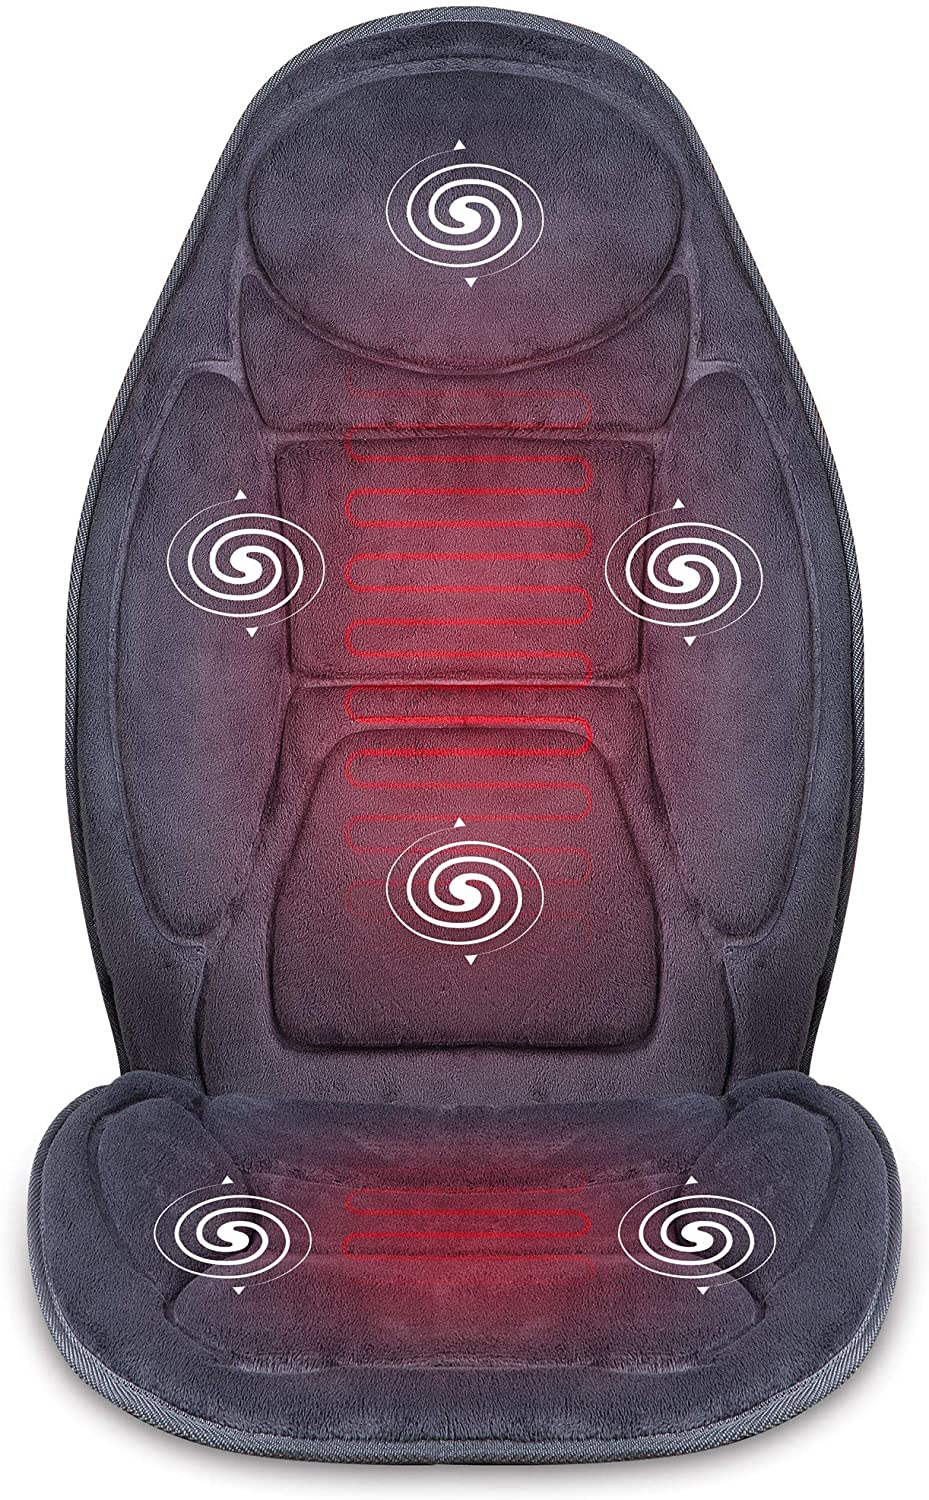 Snailax Massage Seat Cushion-Extra Memory Foam